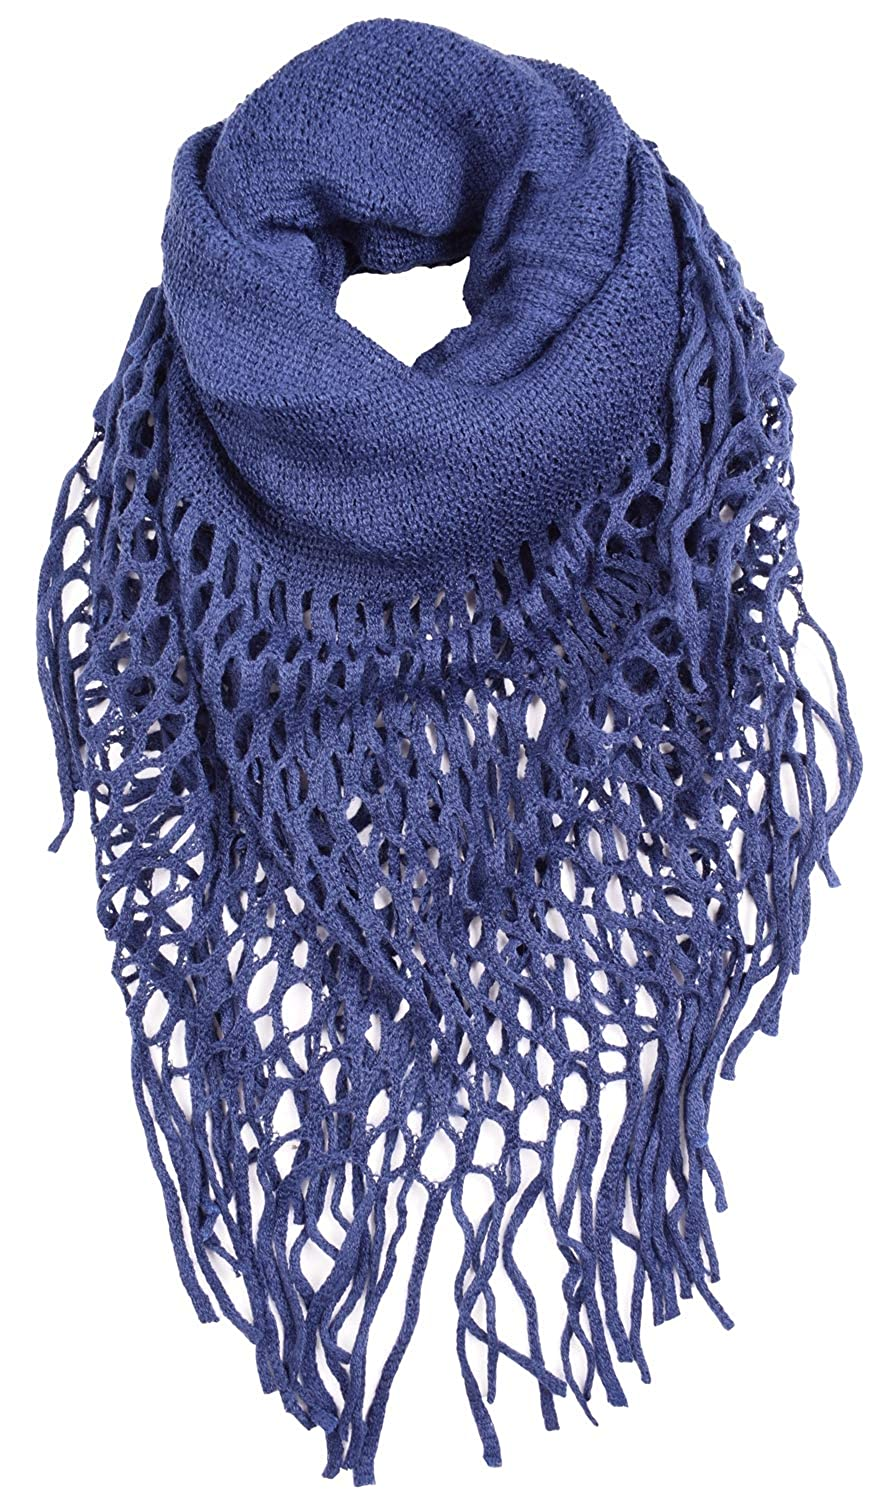 Ceajoo Womens Infinity Scarves Knit Winter Warm With Fringe